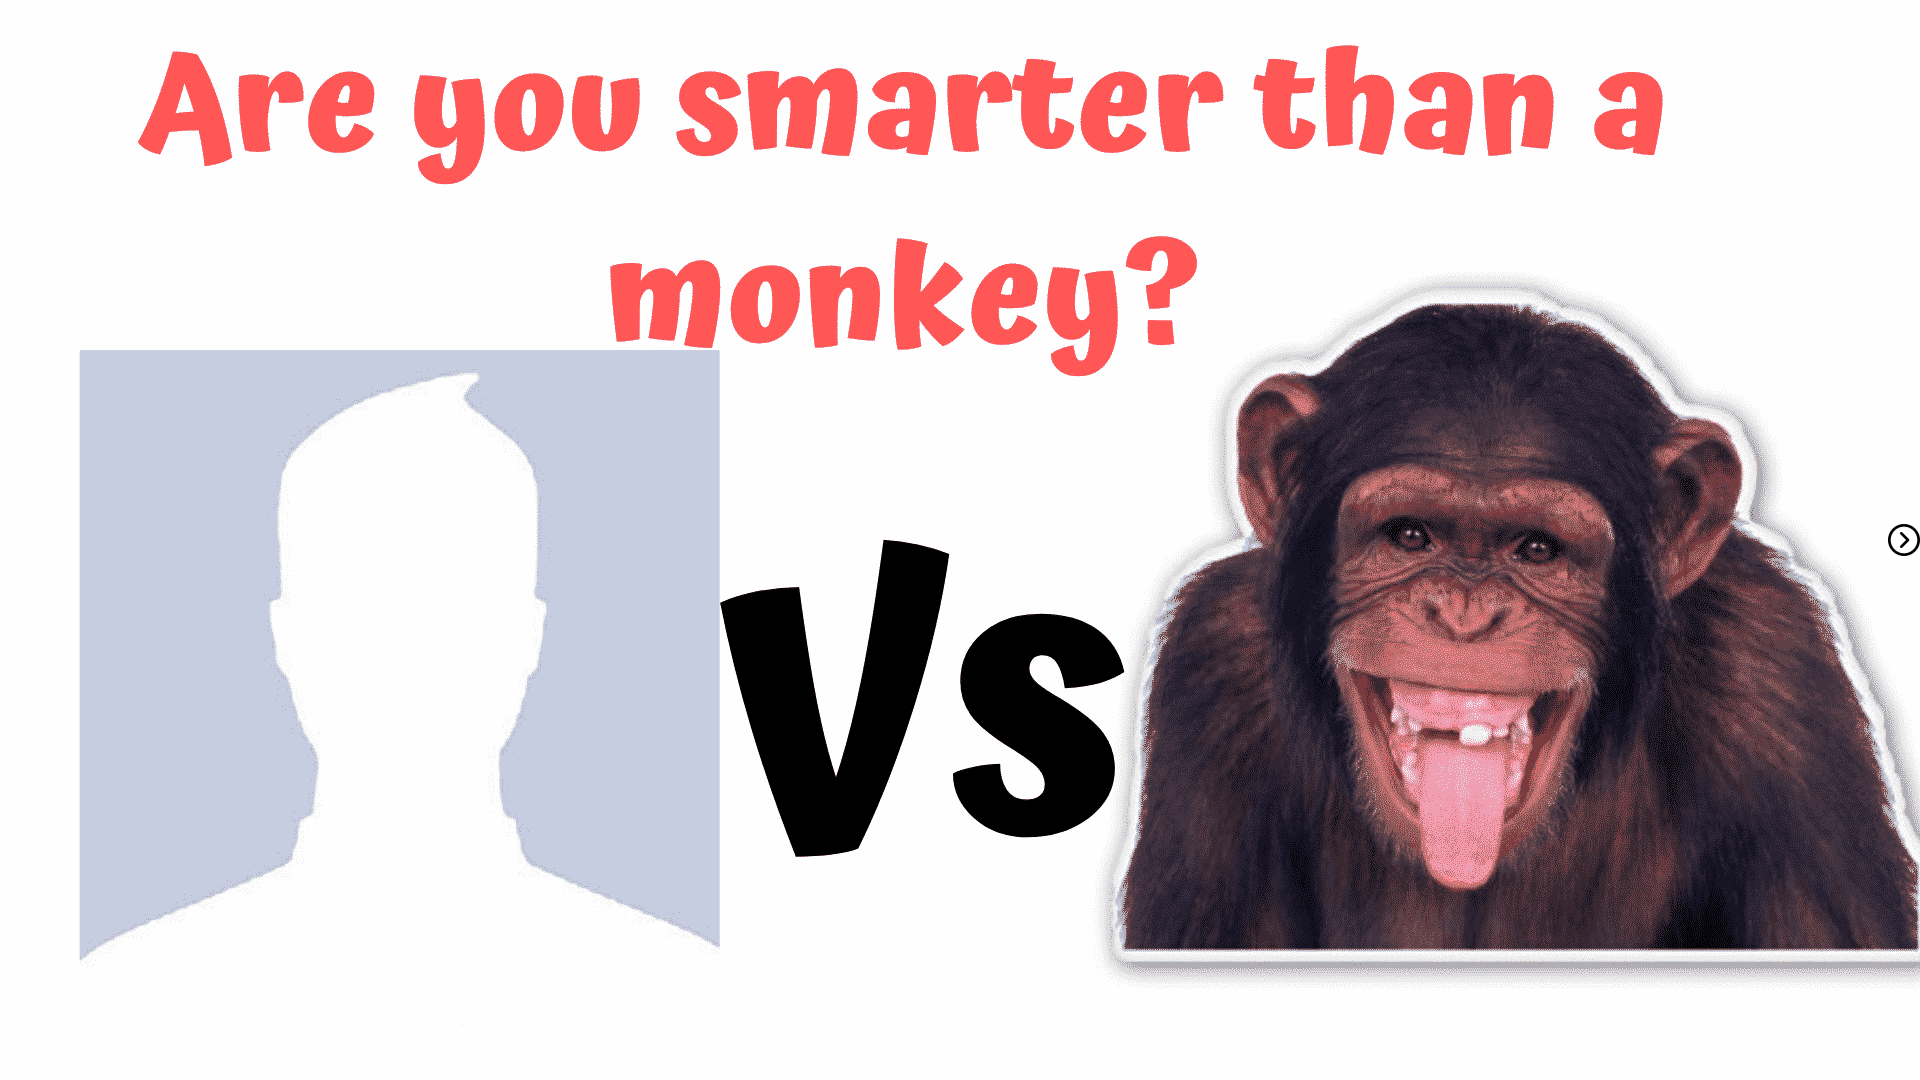 You vs Monkey: Are you smarter than a monkey? IQ test 5